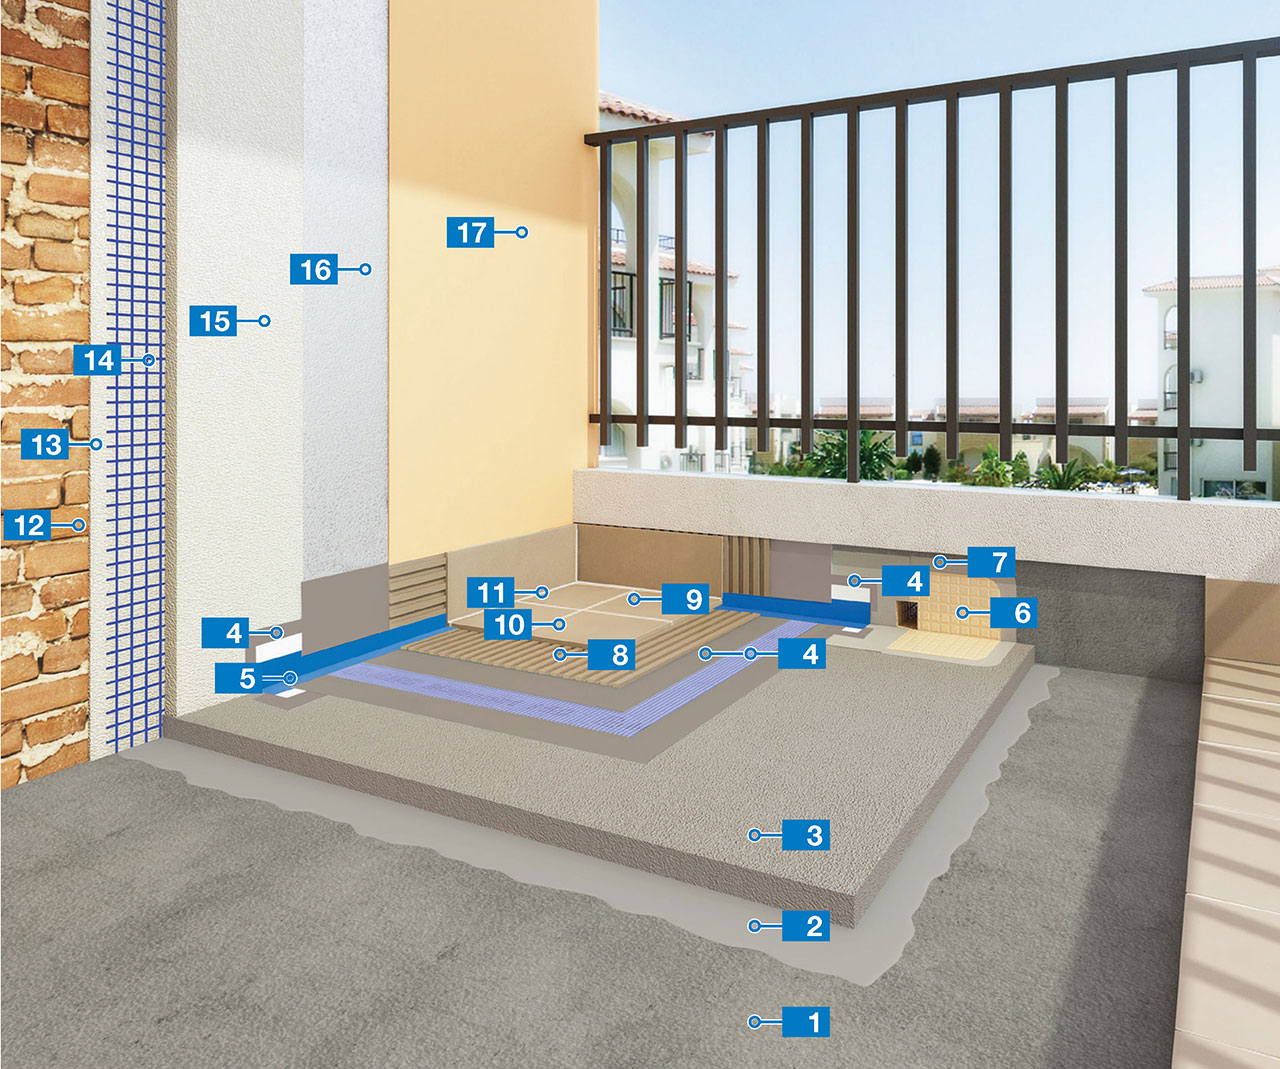 Rapid system for waterproofing and installing ceramic tiles on rapid system for waterproofing and installing ceramic tiles on balconies and complete system for consolidating mechanically weak masonry with reinforced dailygadgetfo Image collections